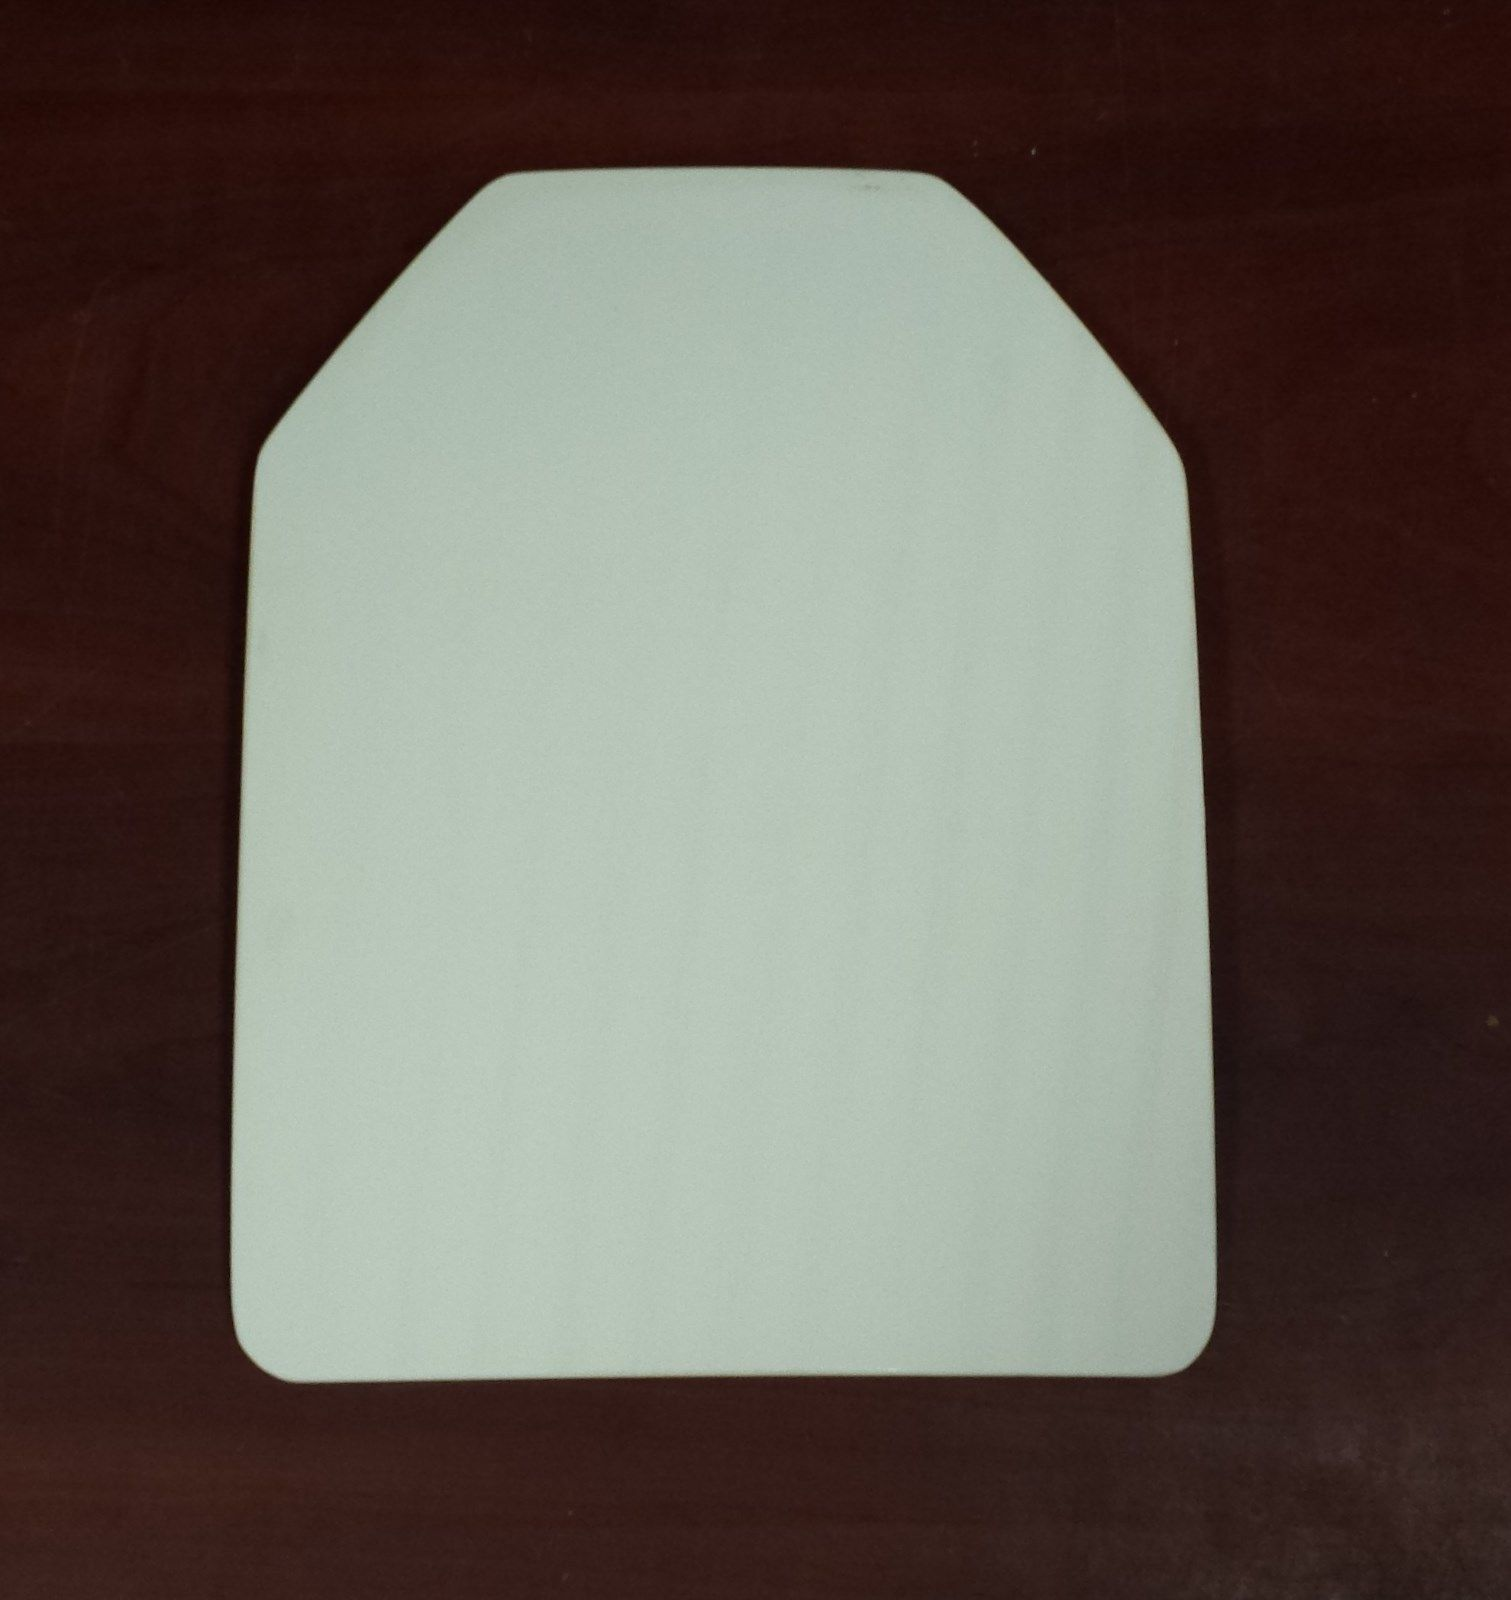 Armor Design Body Armor Ceramic Plate 9.25 W x 12.25 T x ... & Armor Design Body Armor Ceramic Plate 9.25